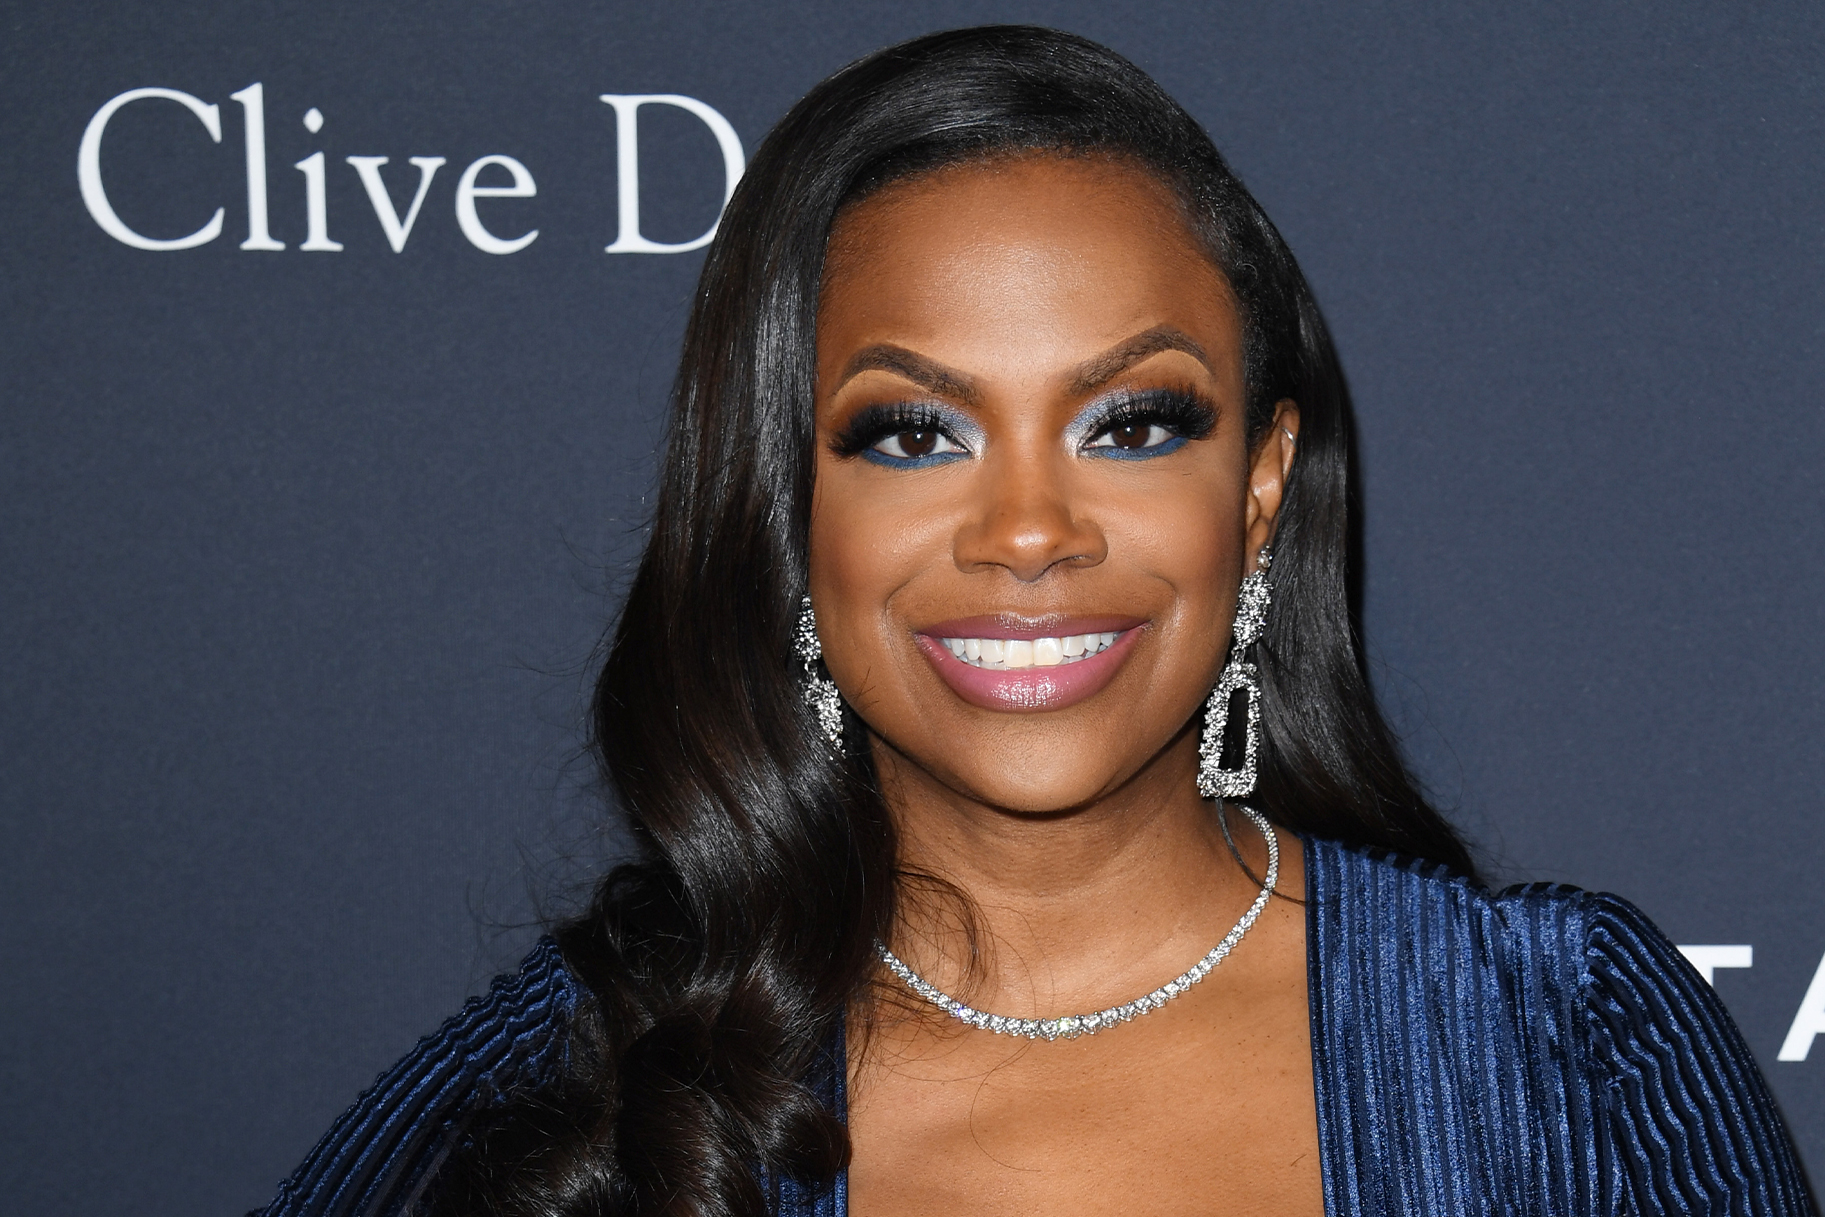 kandi-burruss-looks-gorgeous-in-her-latest-photo-see-it-here